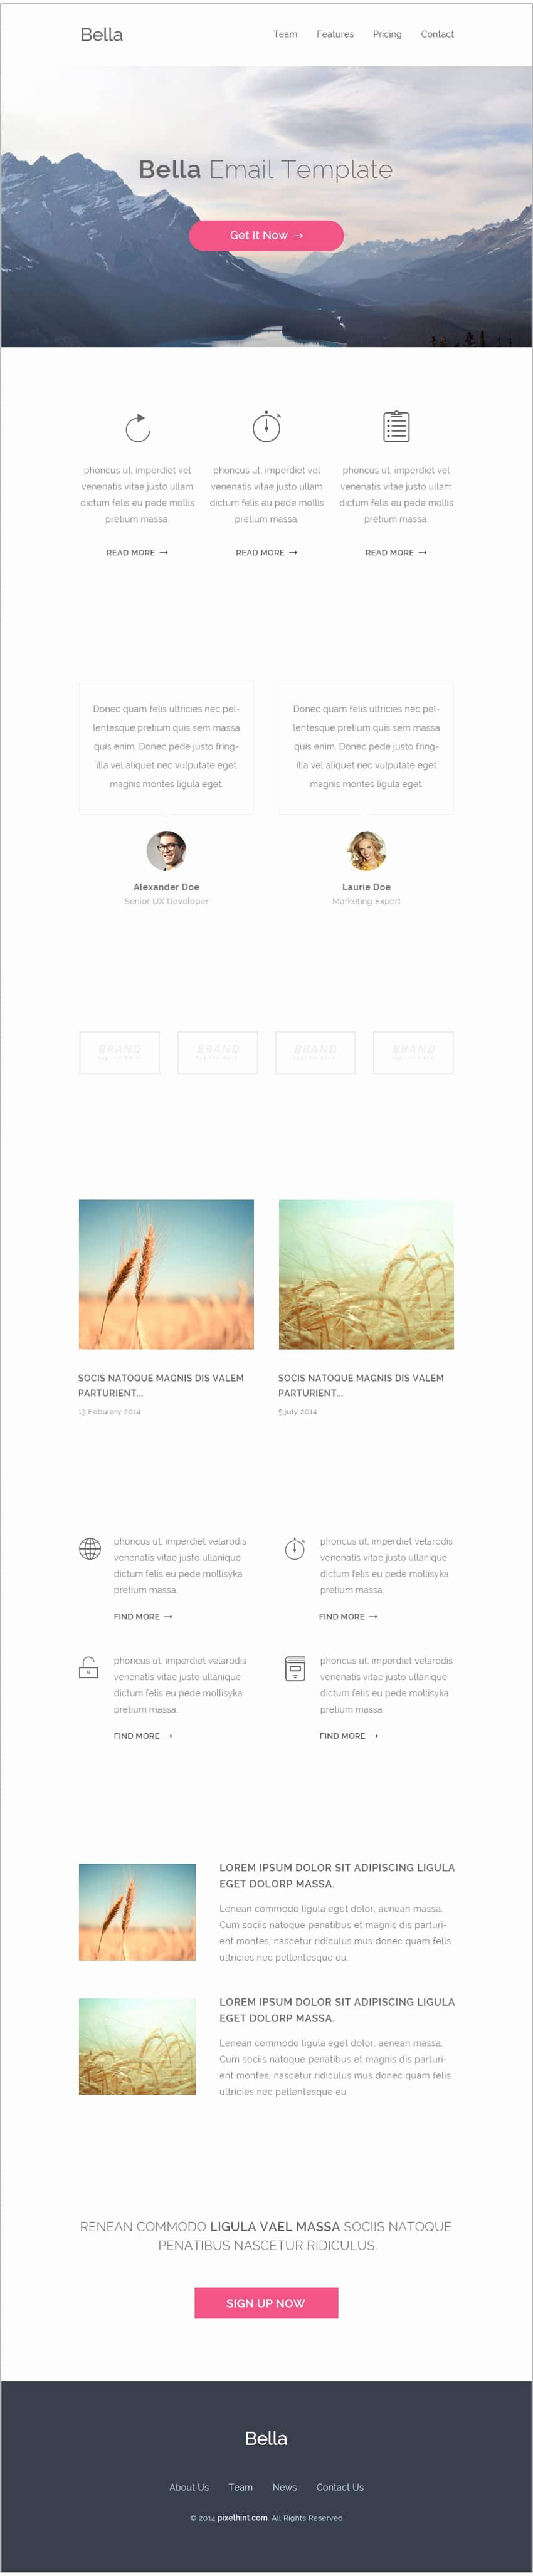 Free Email Template Psd Luxury Free Email Newsletter Templates Psd Css Author